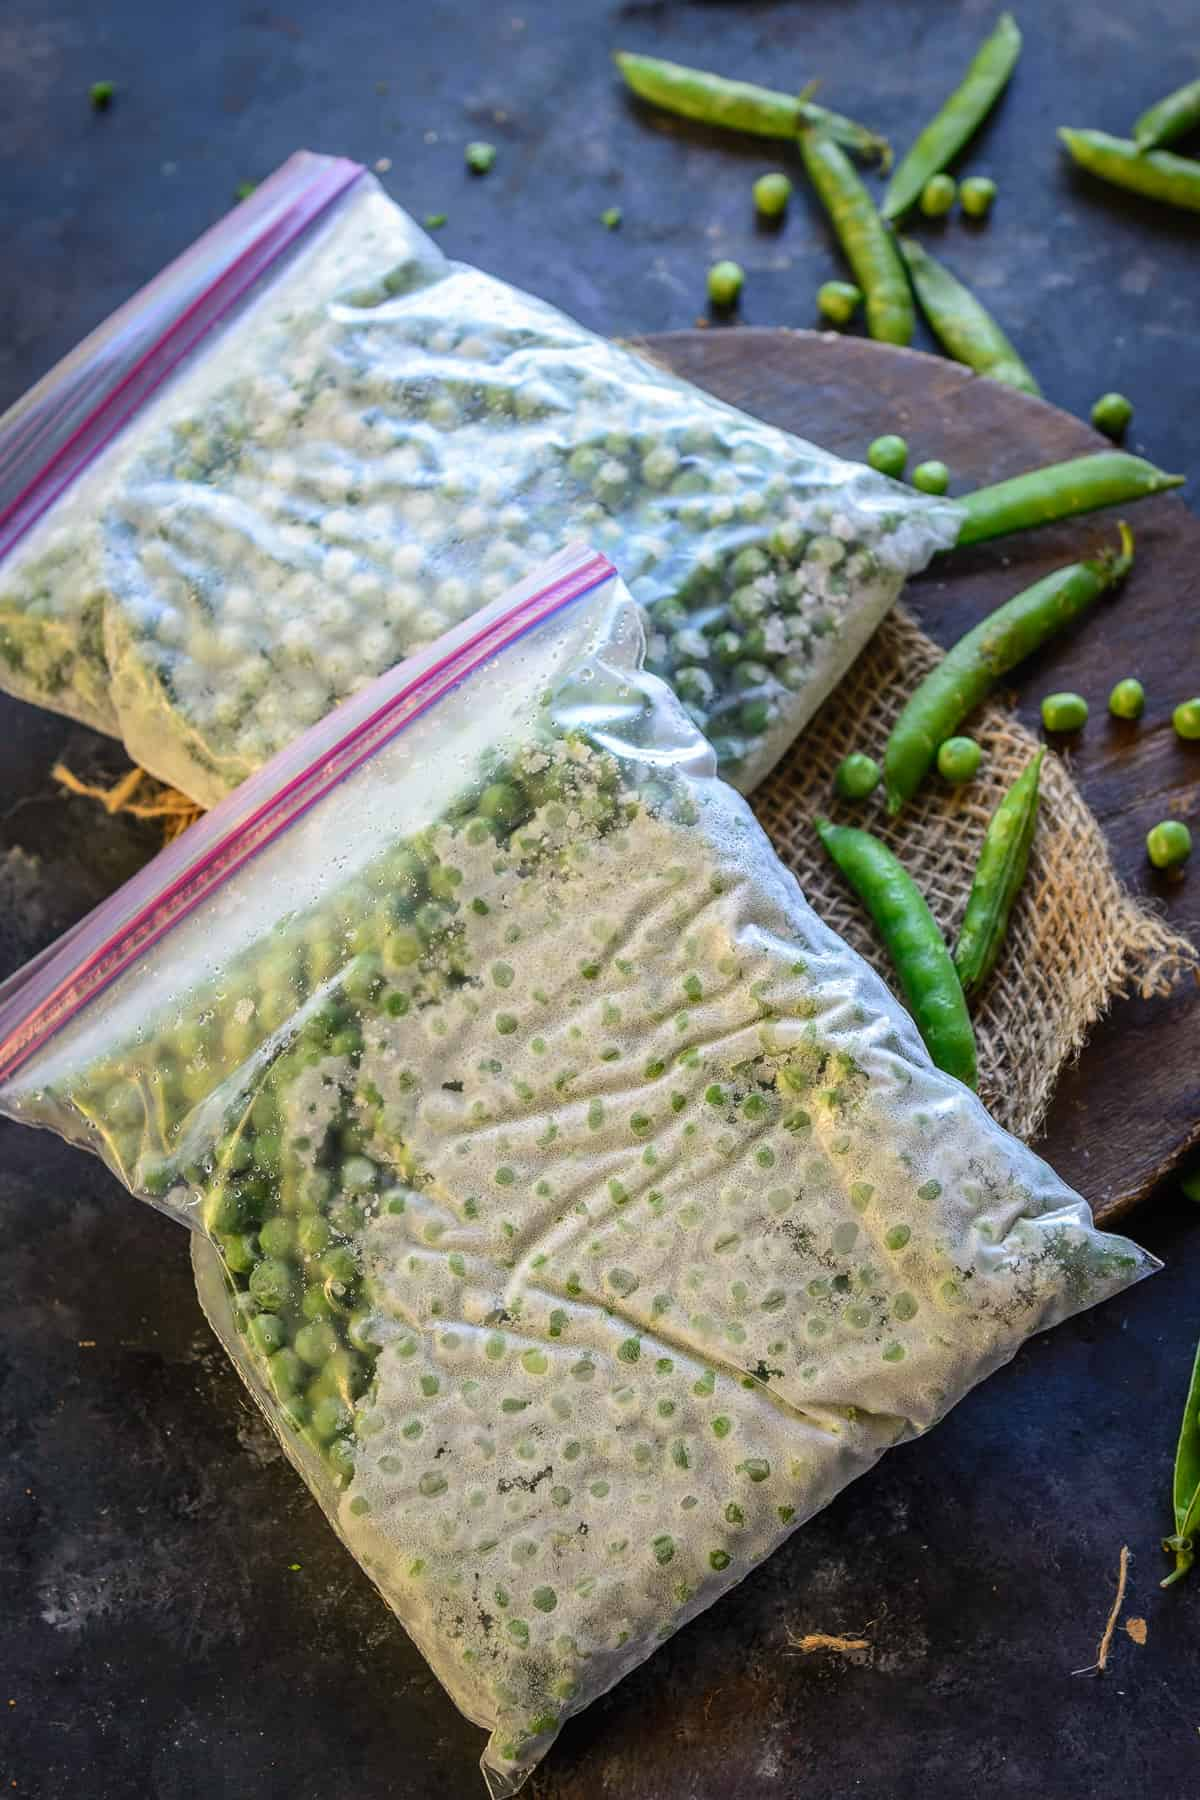 Frozen peas kept in a zip lock bag.